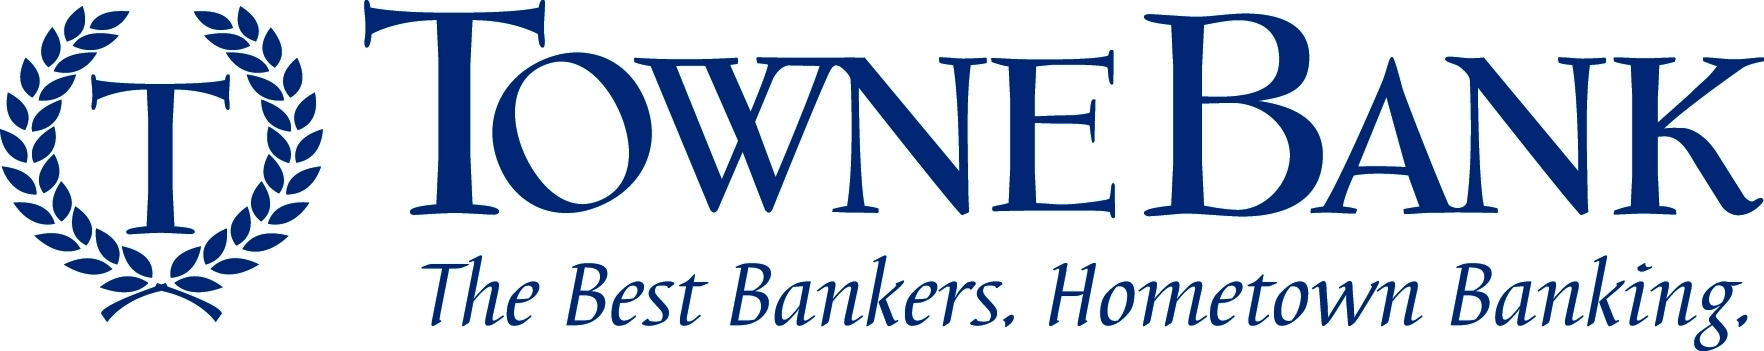 mcnulty and wright townebank logo  tagline